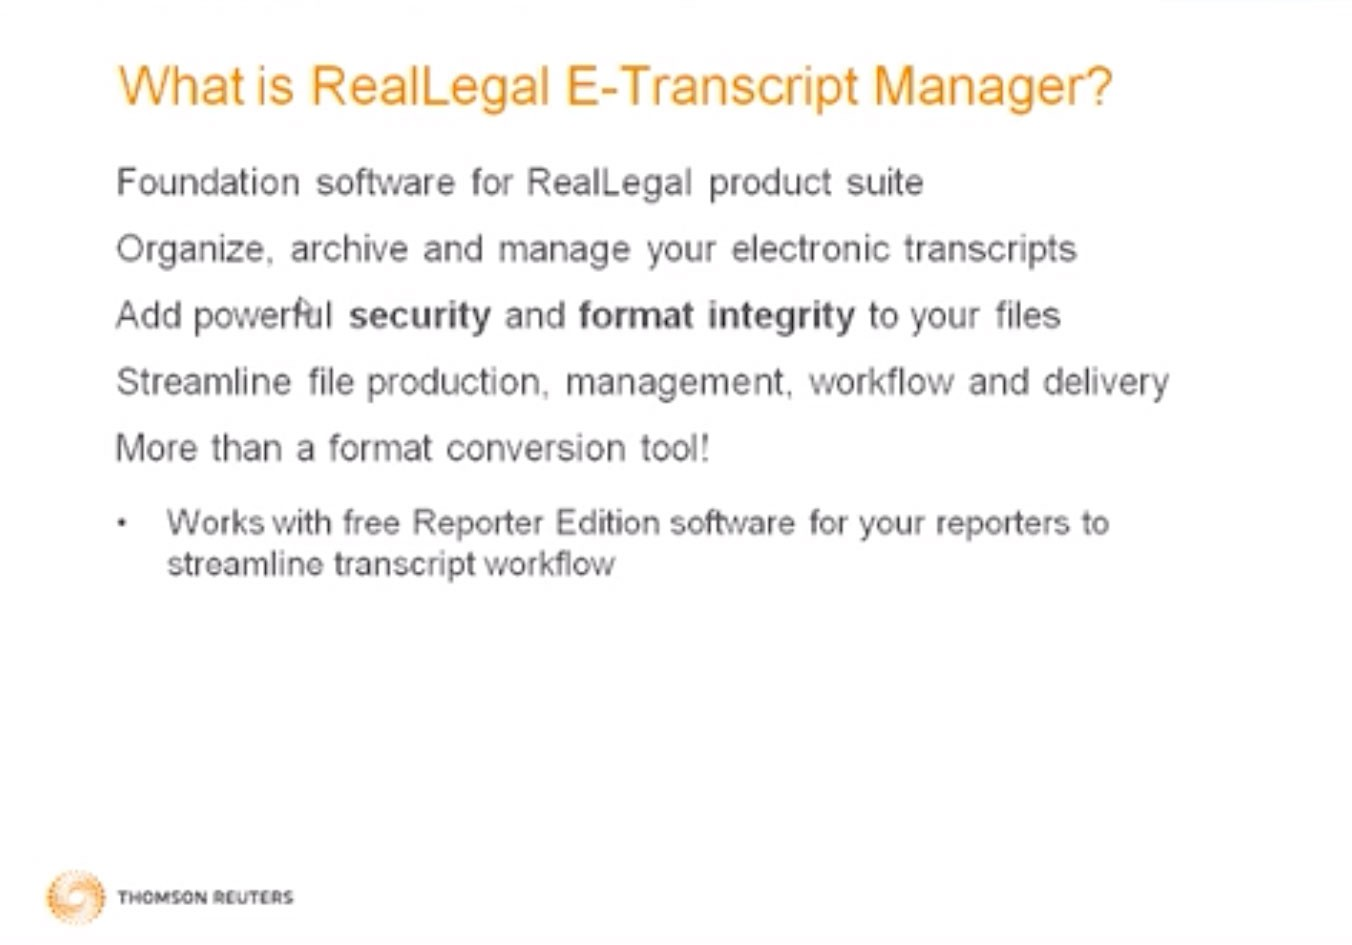 What is RealLegal E-Transcript Manager video